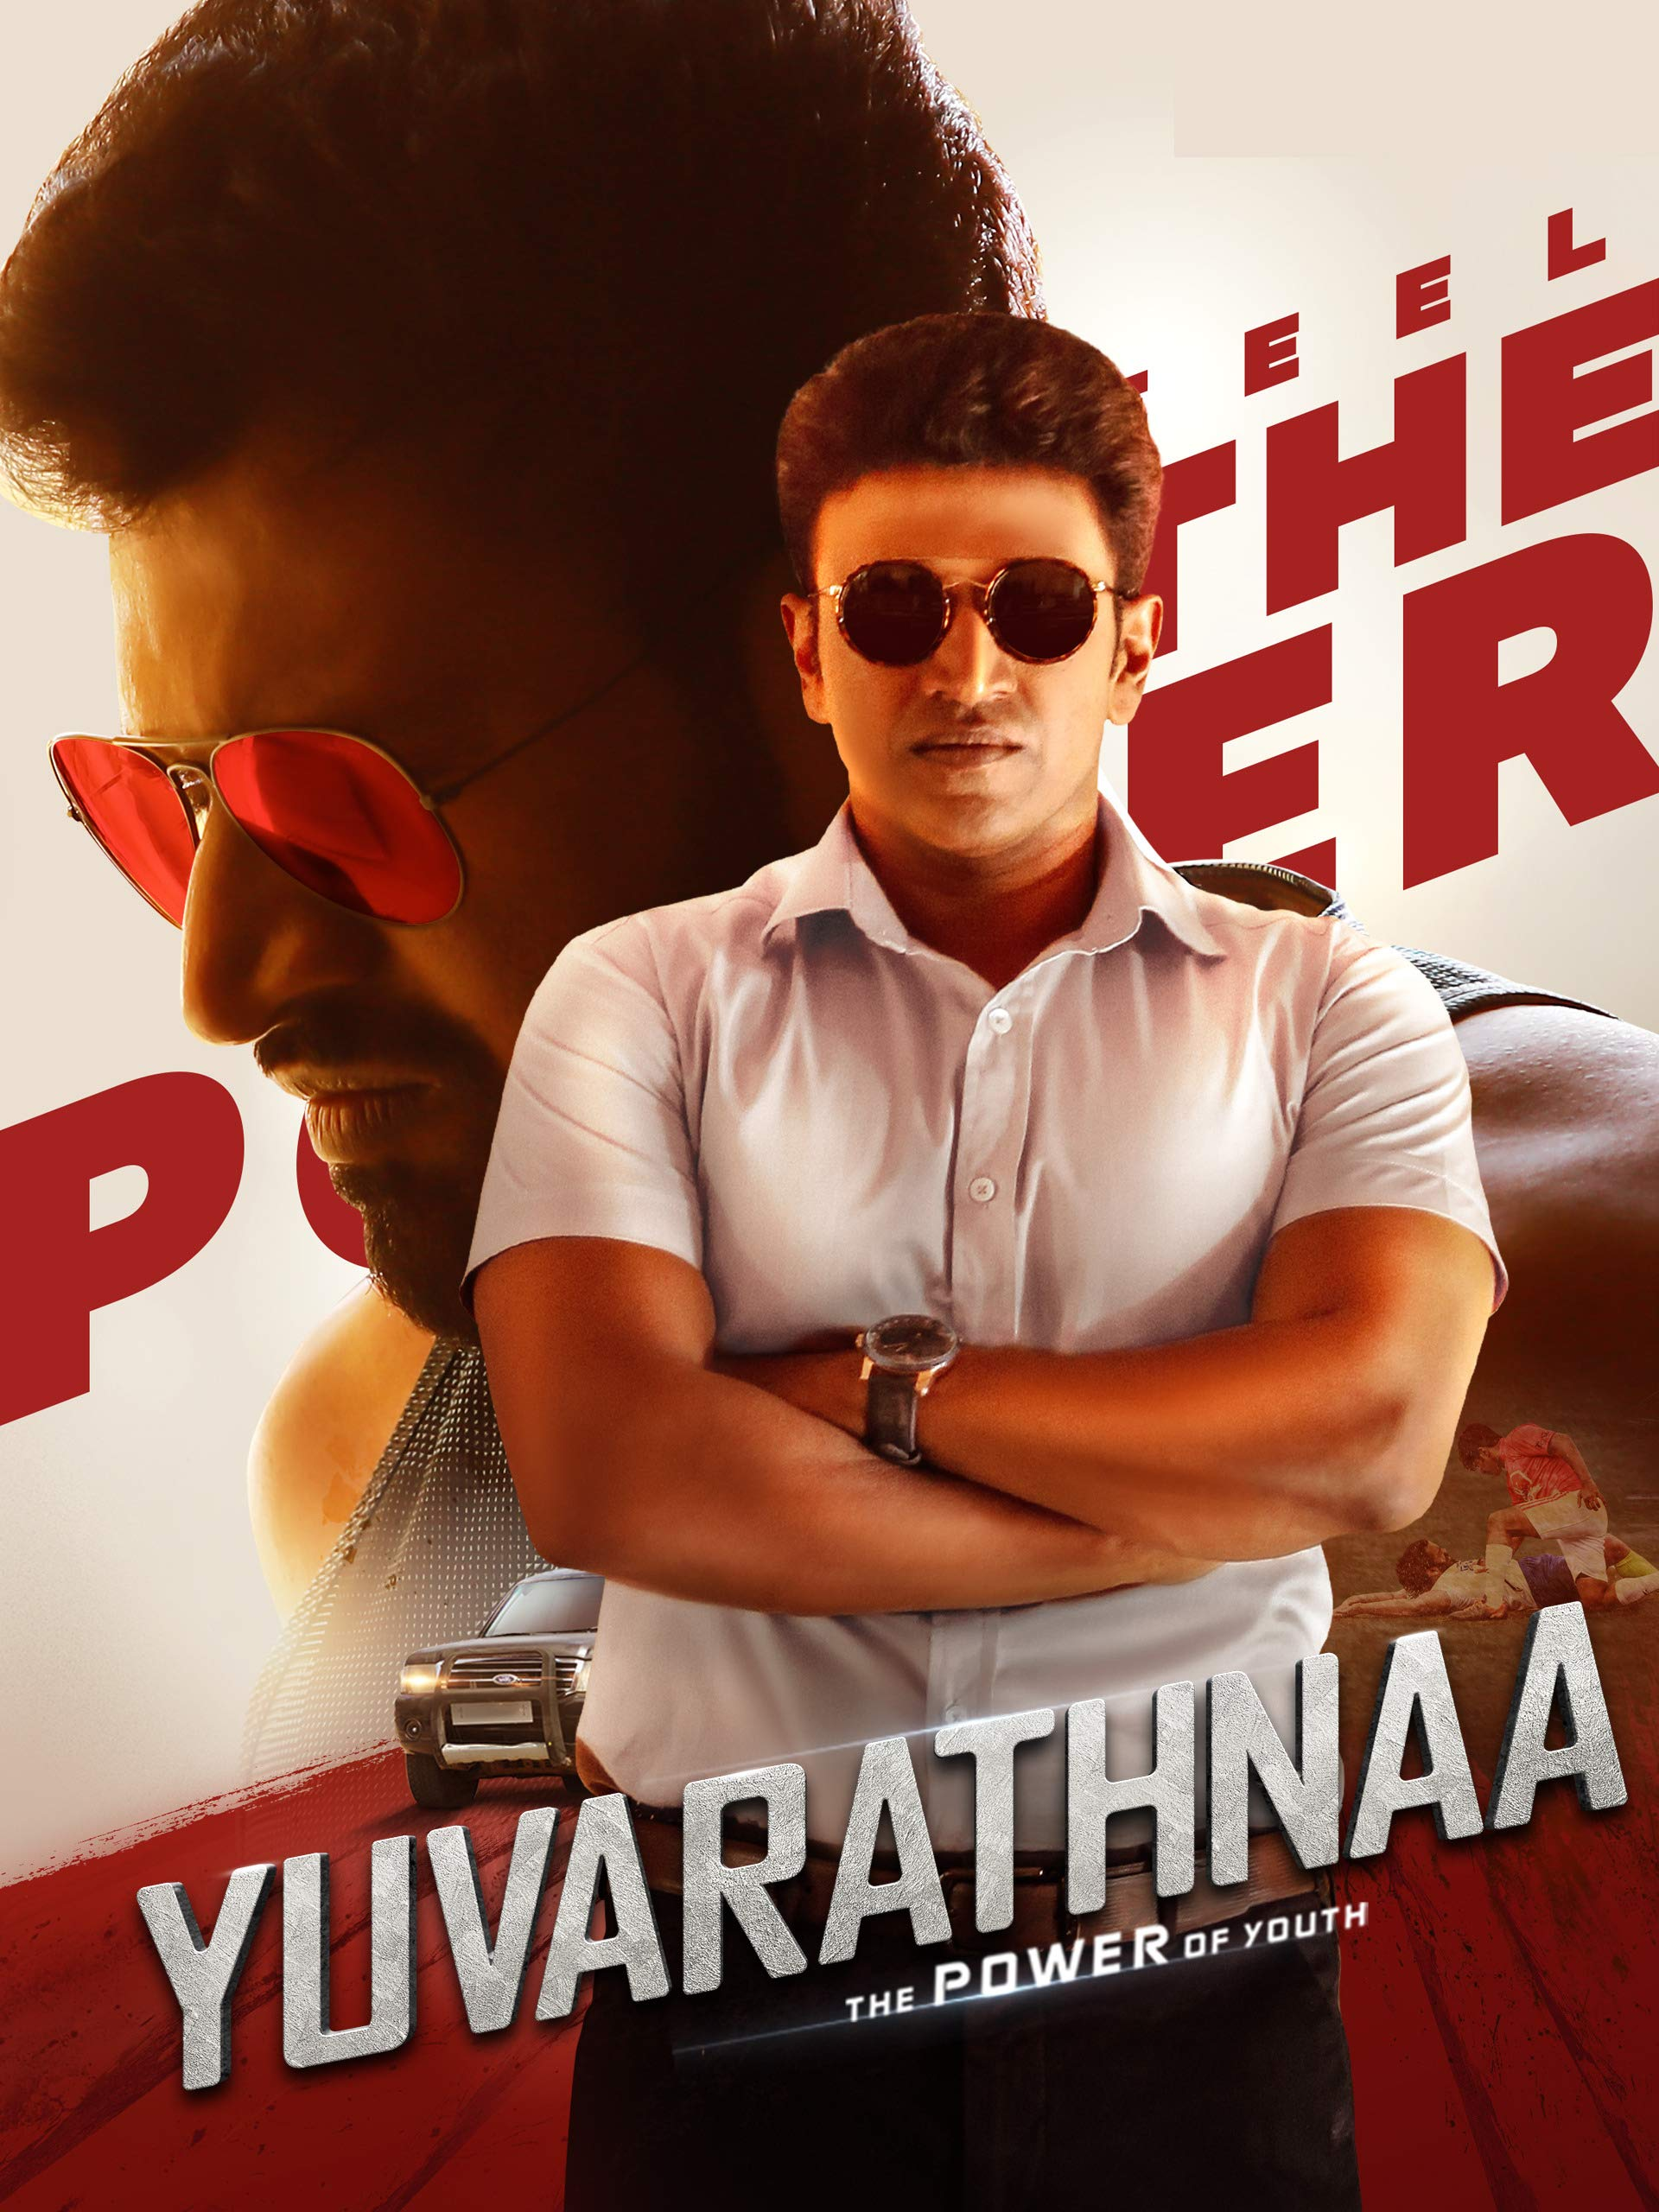 Download Yuvarathnaa 2021 Hindi Dubbed 720p HDRip ESub 1.4GB